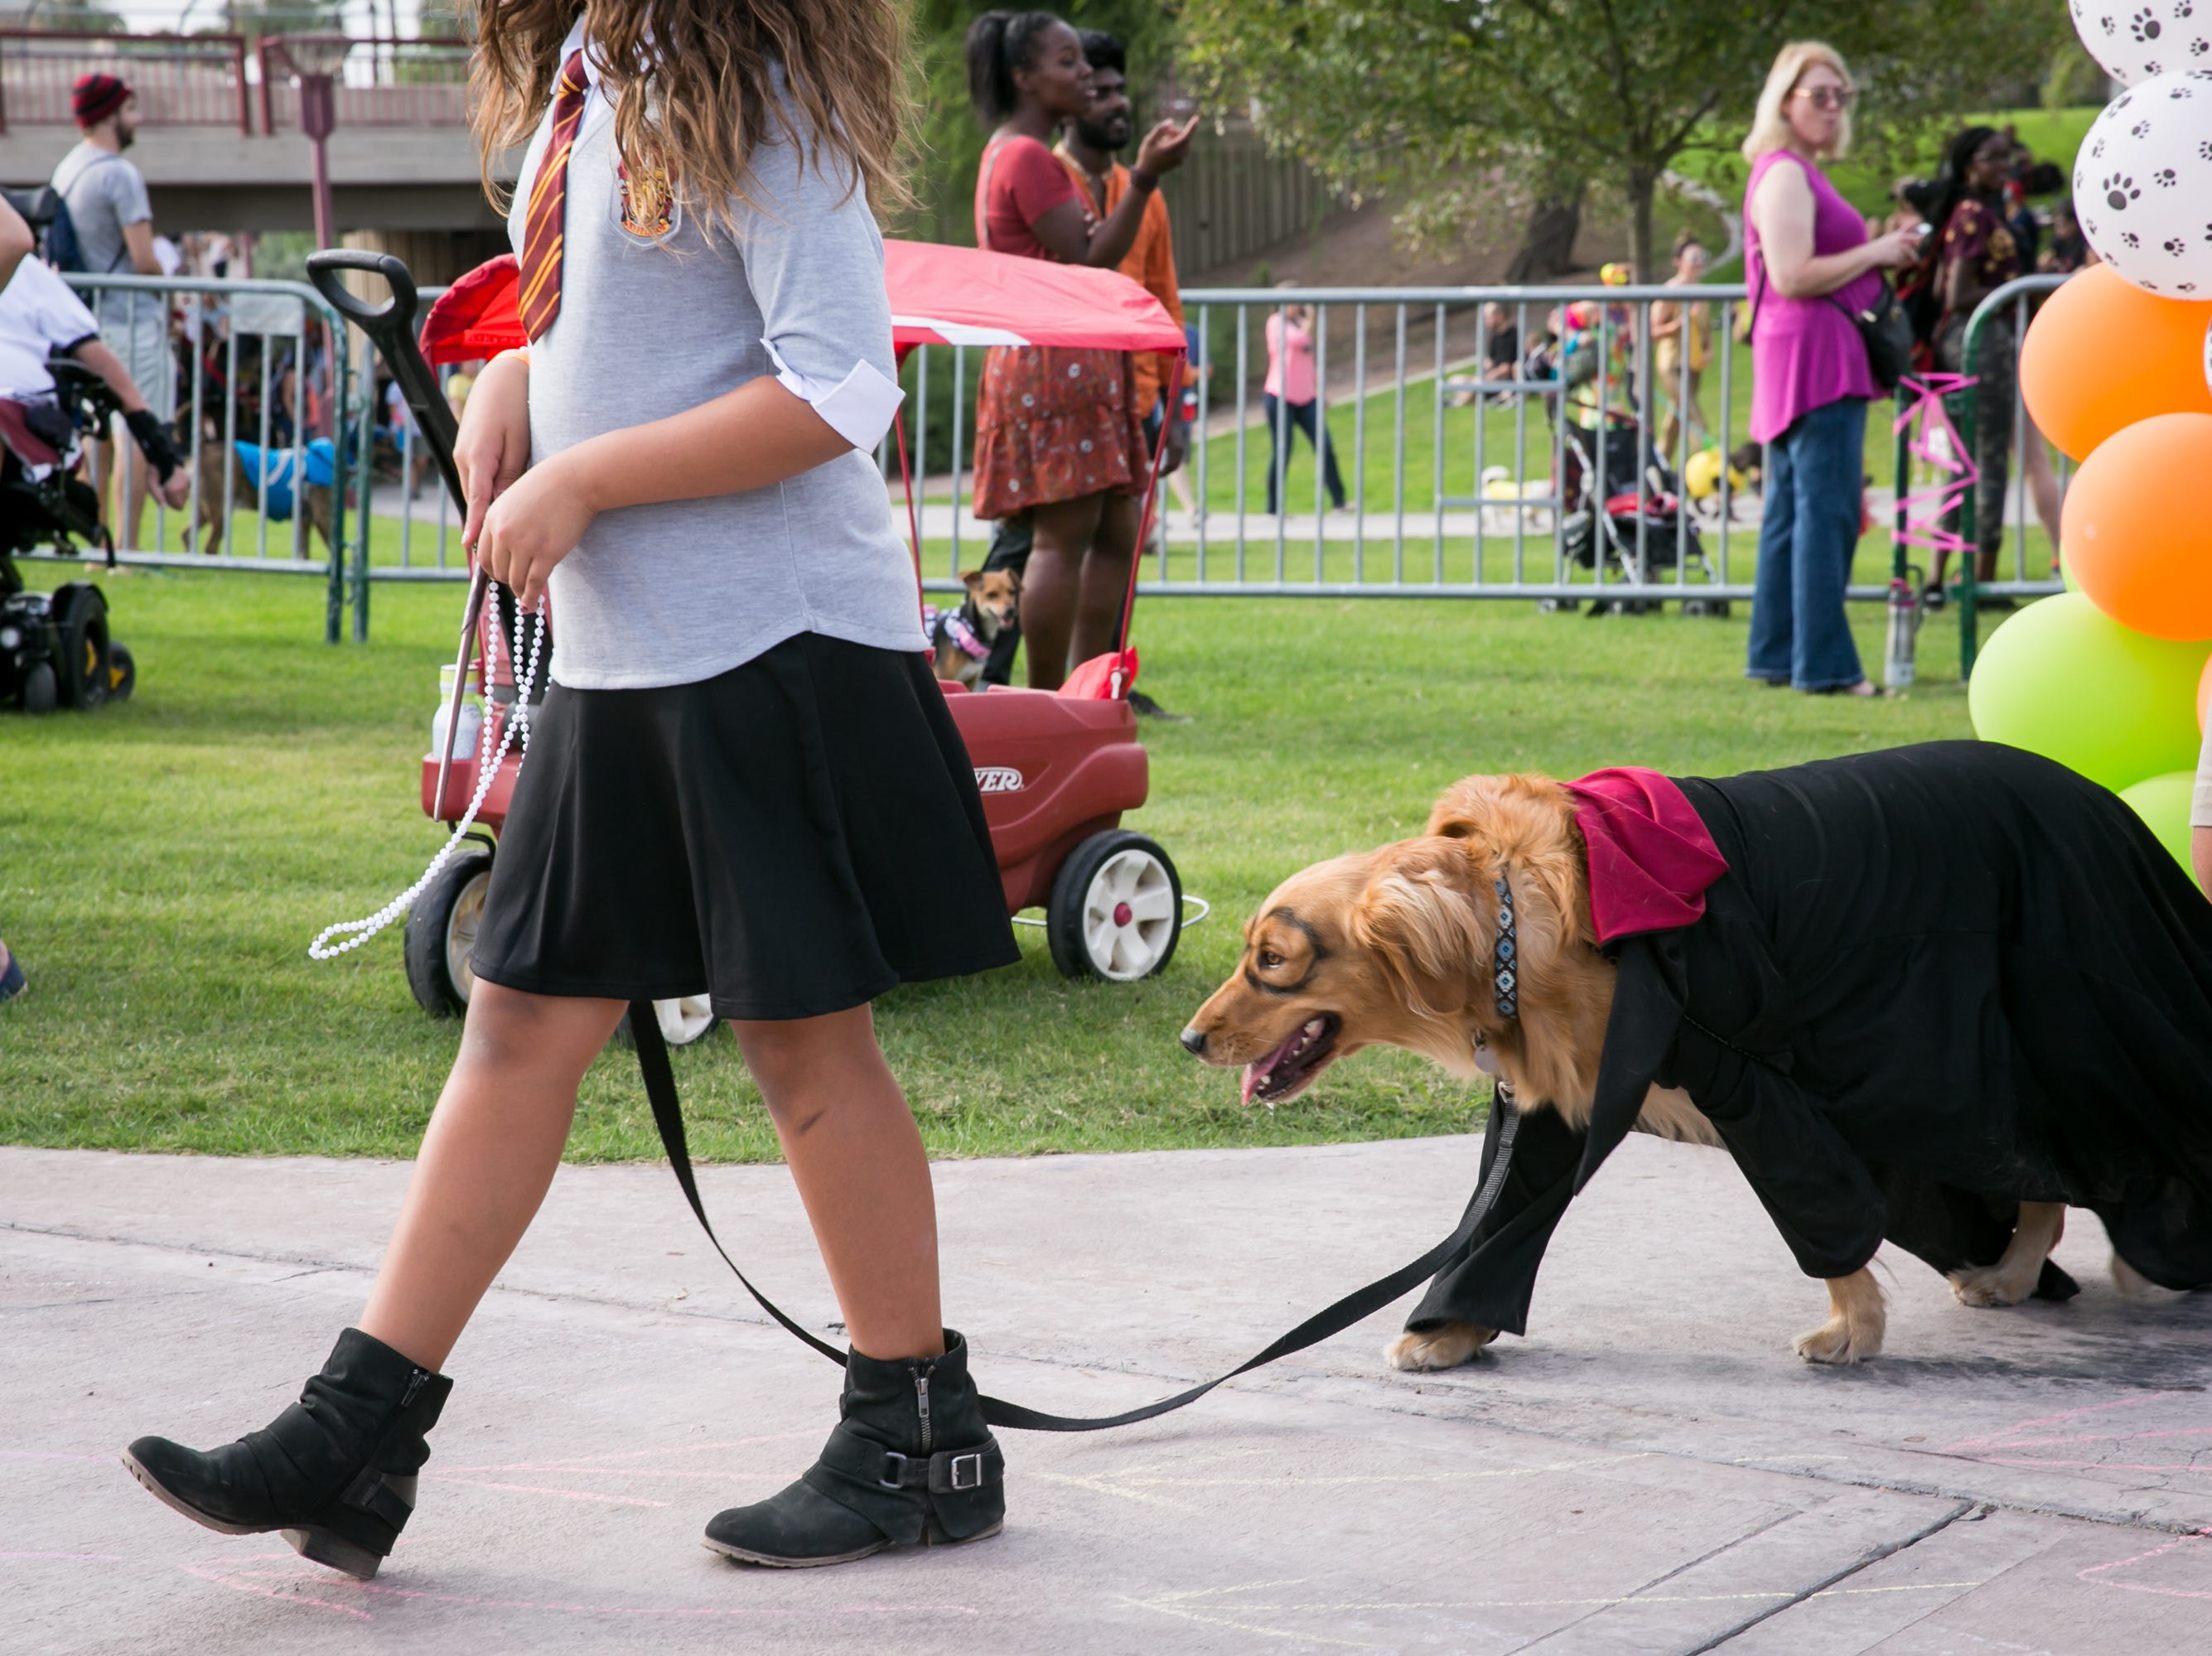 Hairy Pawter looked quite dashing during Howl-o-Ween at Hance Park on Sunday, October 28, 2018.